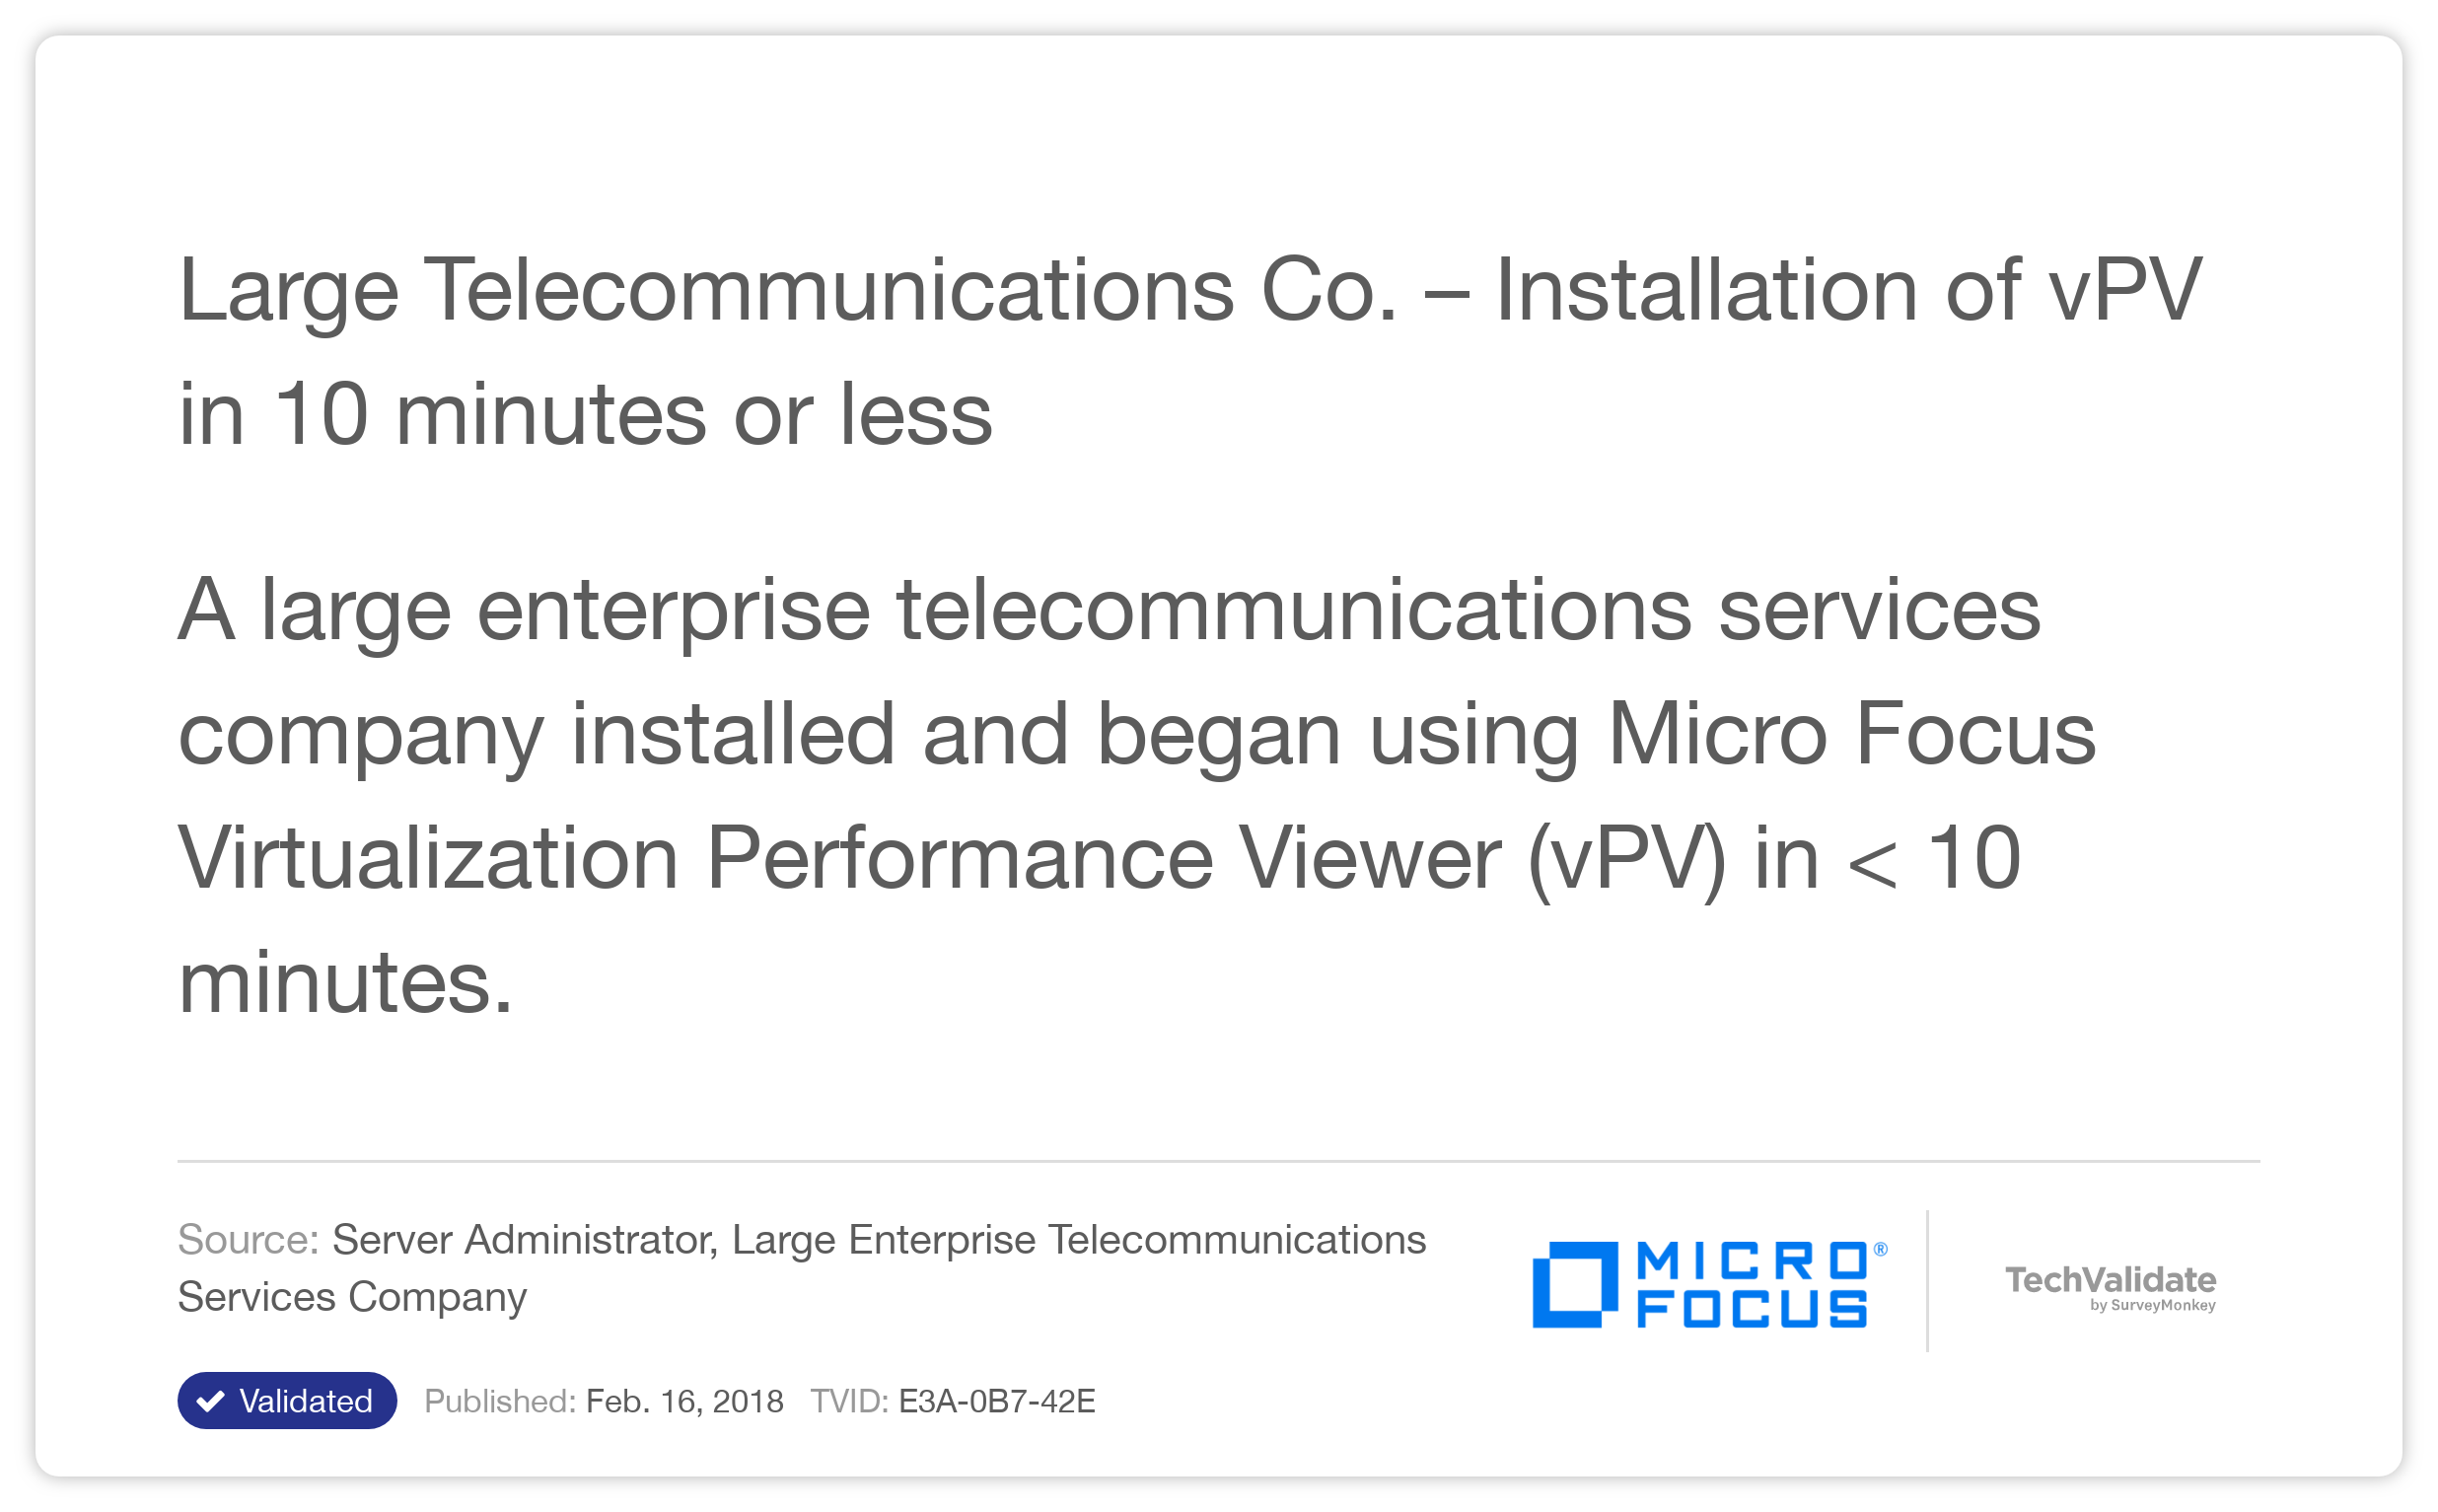 Large Telecommunications Co. - Installation of vPV in 10 minutes or less